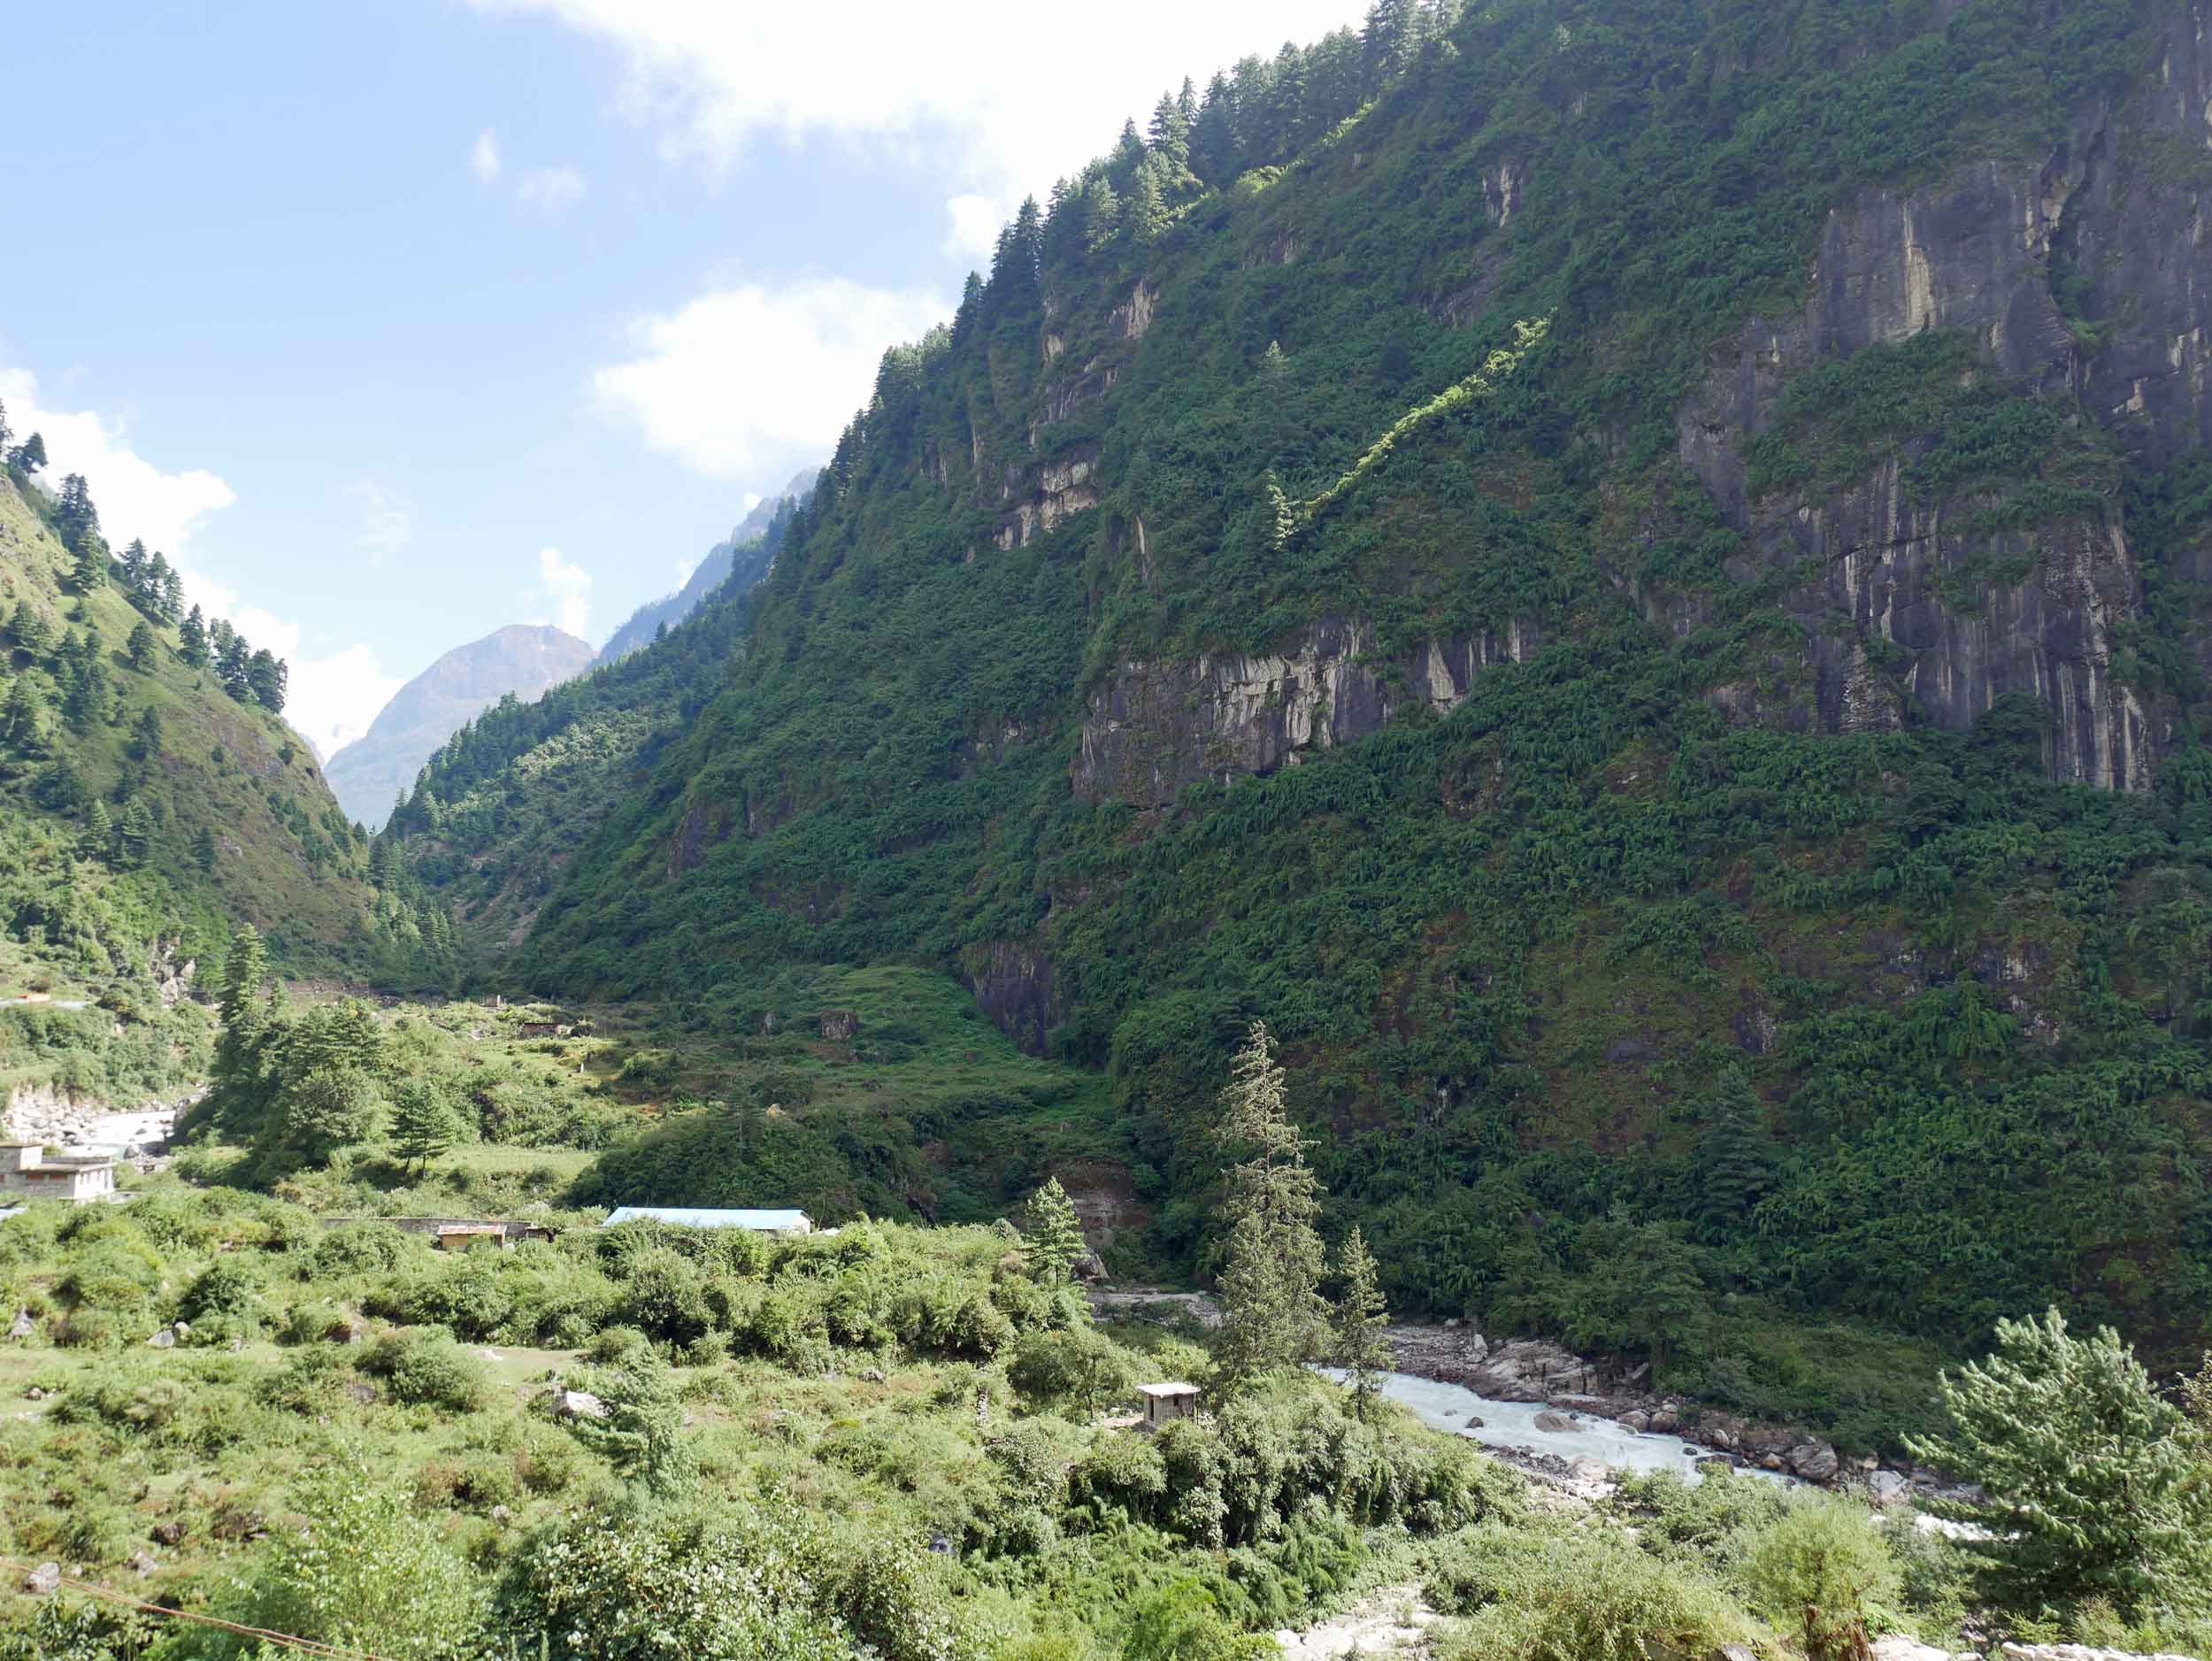 As we entered the Annapurna Conservation Area (ACA), we began our trek in the lush jungle lower-lands of the Annapurna Circuit (Oct 2).